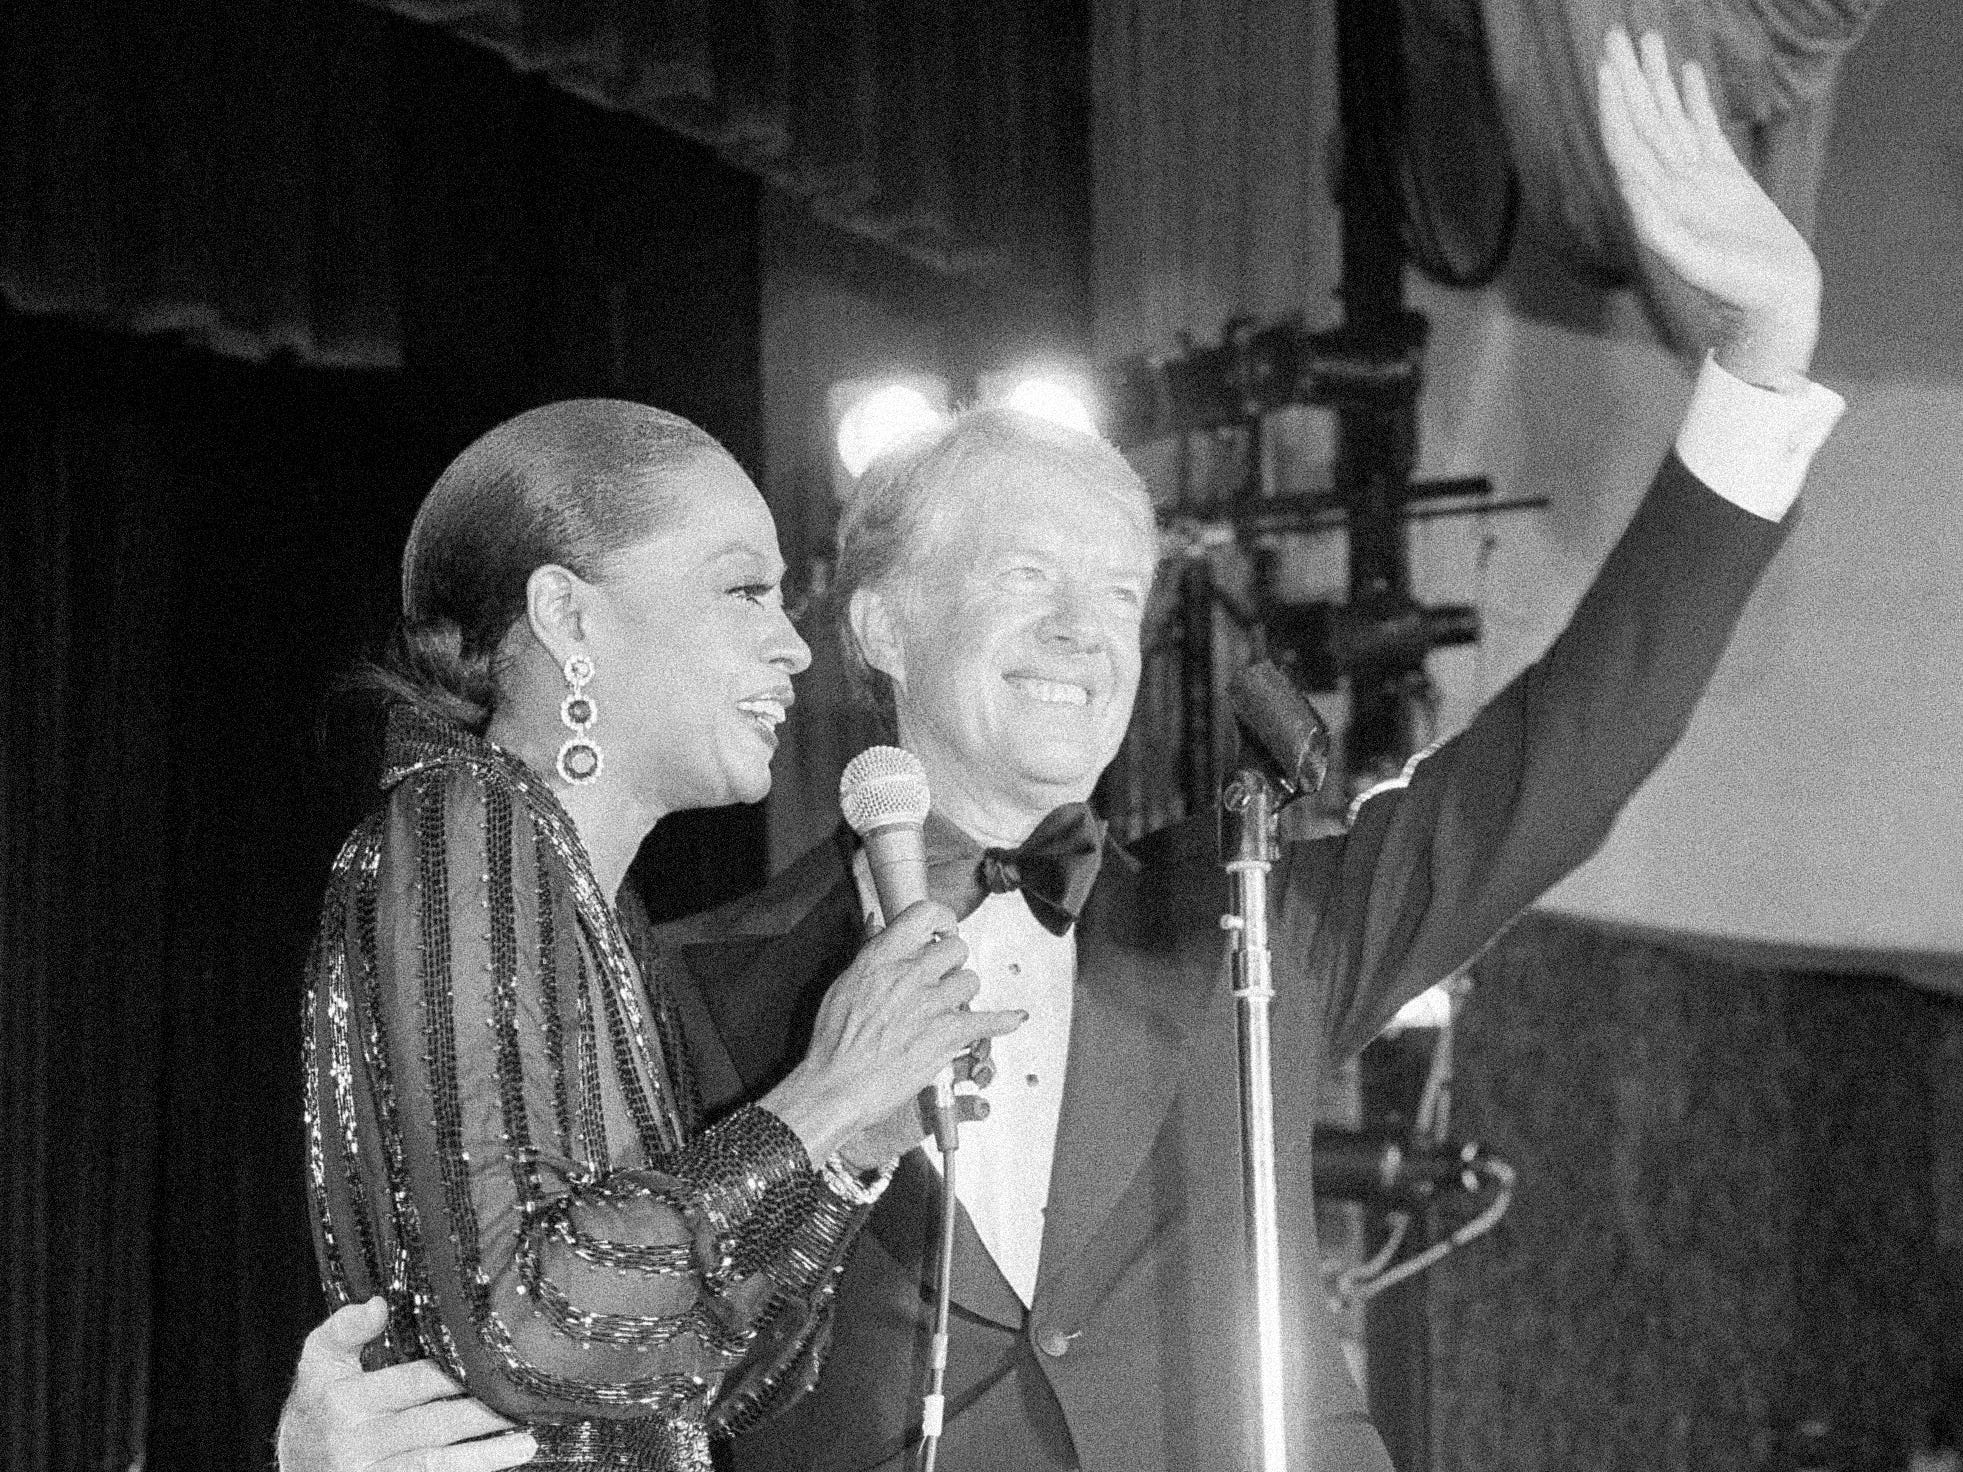 President Jimmy Carter shares the stage with Diana Ross at a fundraiser for the Democratic National Committee in Washington, Sept. 28, 1978. Ross, a Democrat, has sung for many presidents, beginning with Lyndon Johnson.